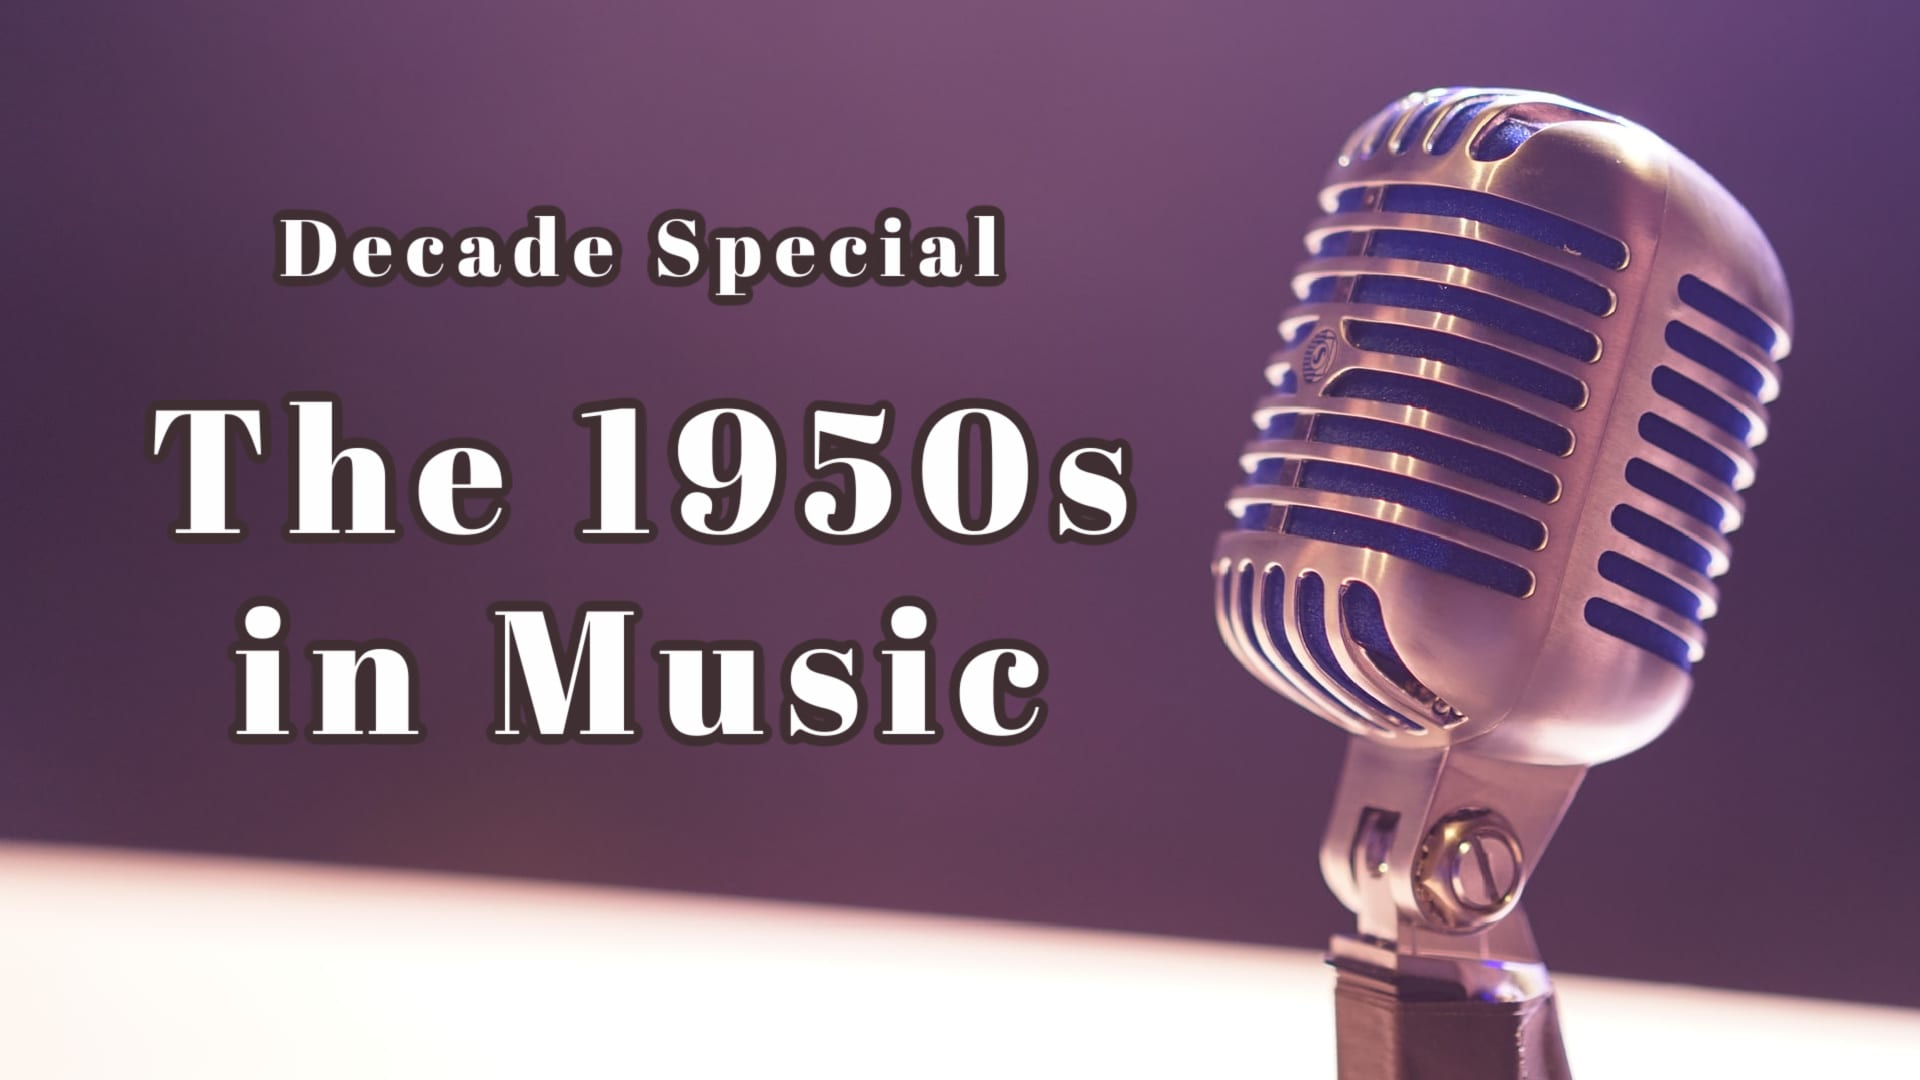 Decade Special: The 1950s in Music